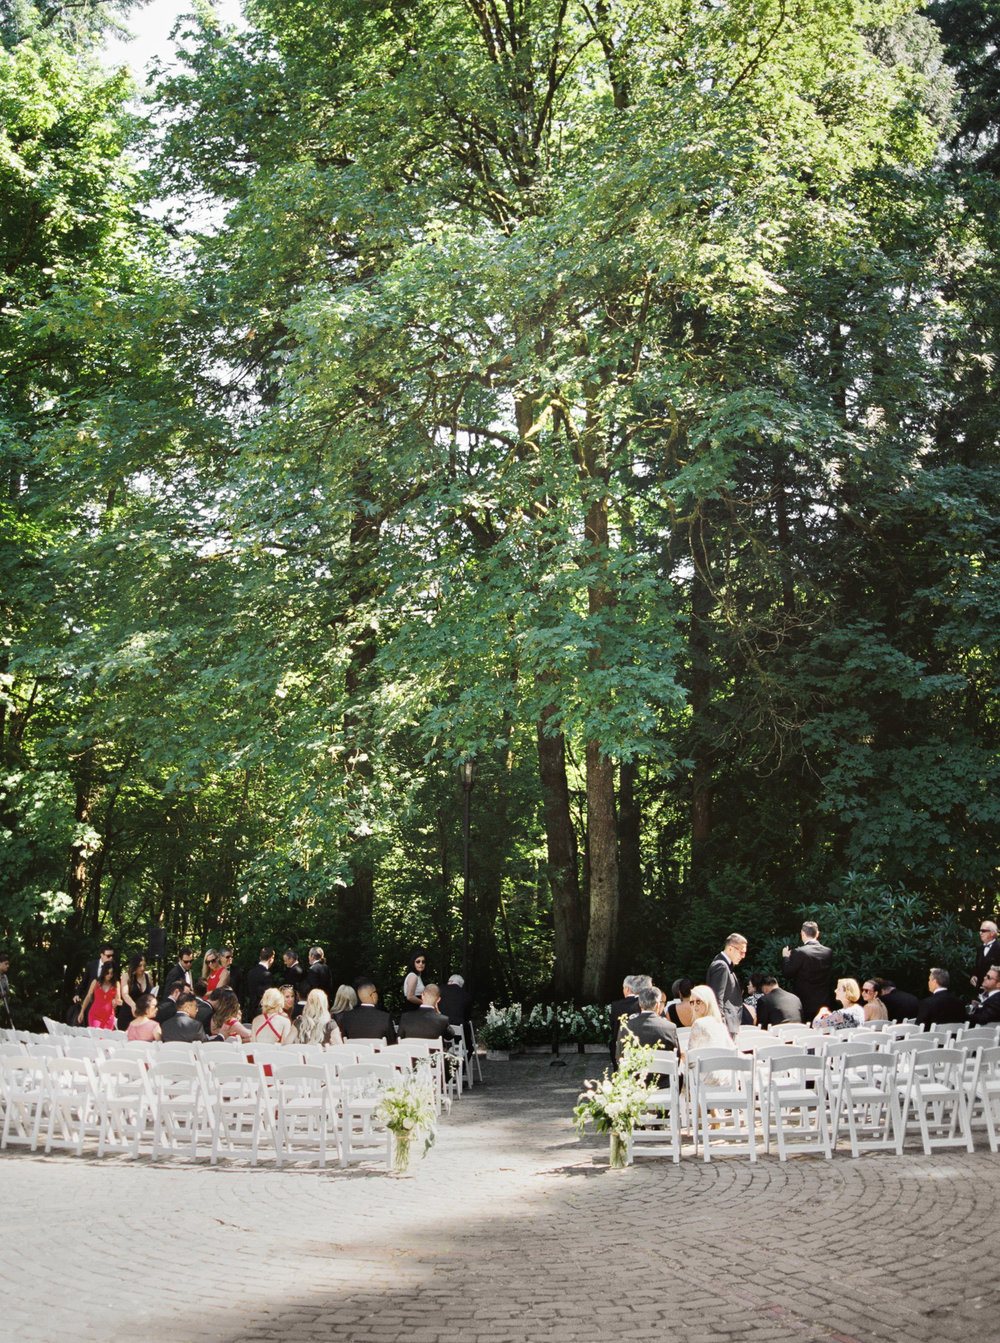 115OutliveCreative_Travel_Photographer_Videographer_Lewis&Clark_Oregon_Elegant_BlackTie_Destination_Wedding.jpg